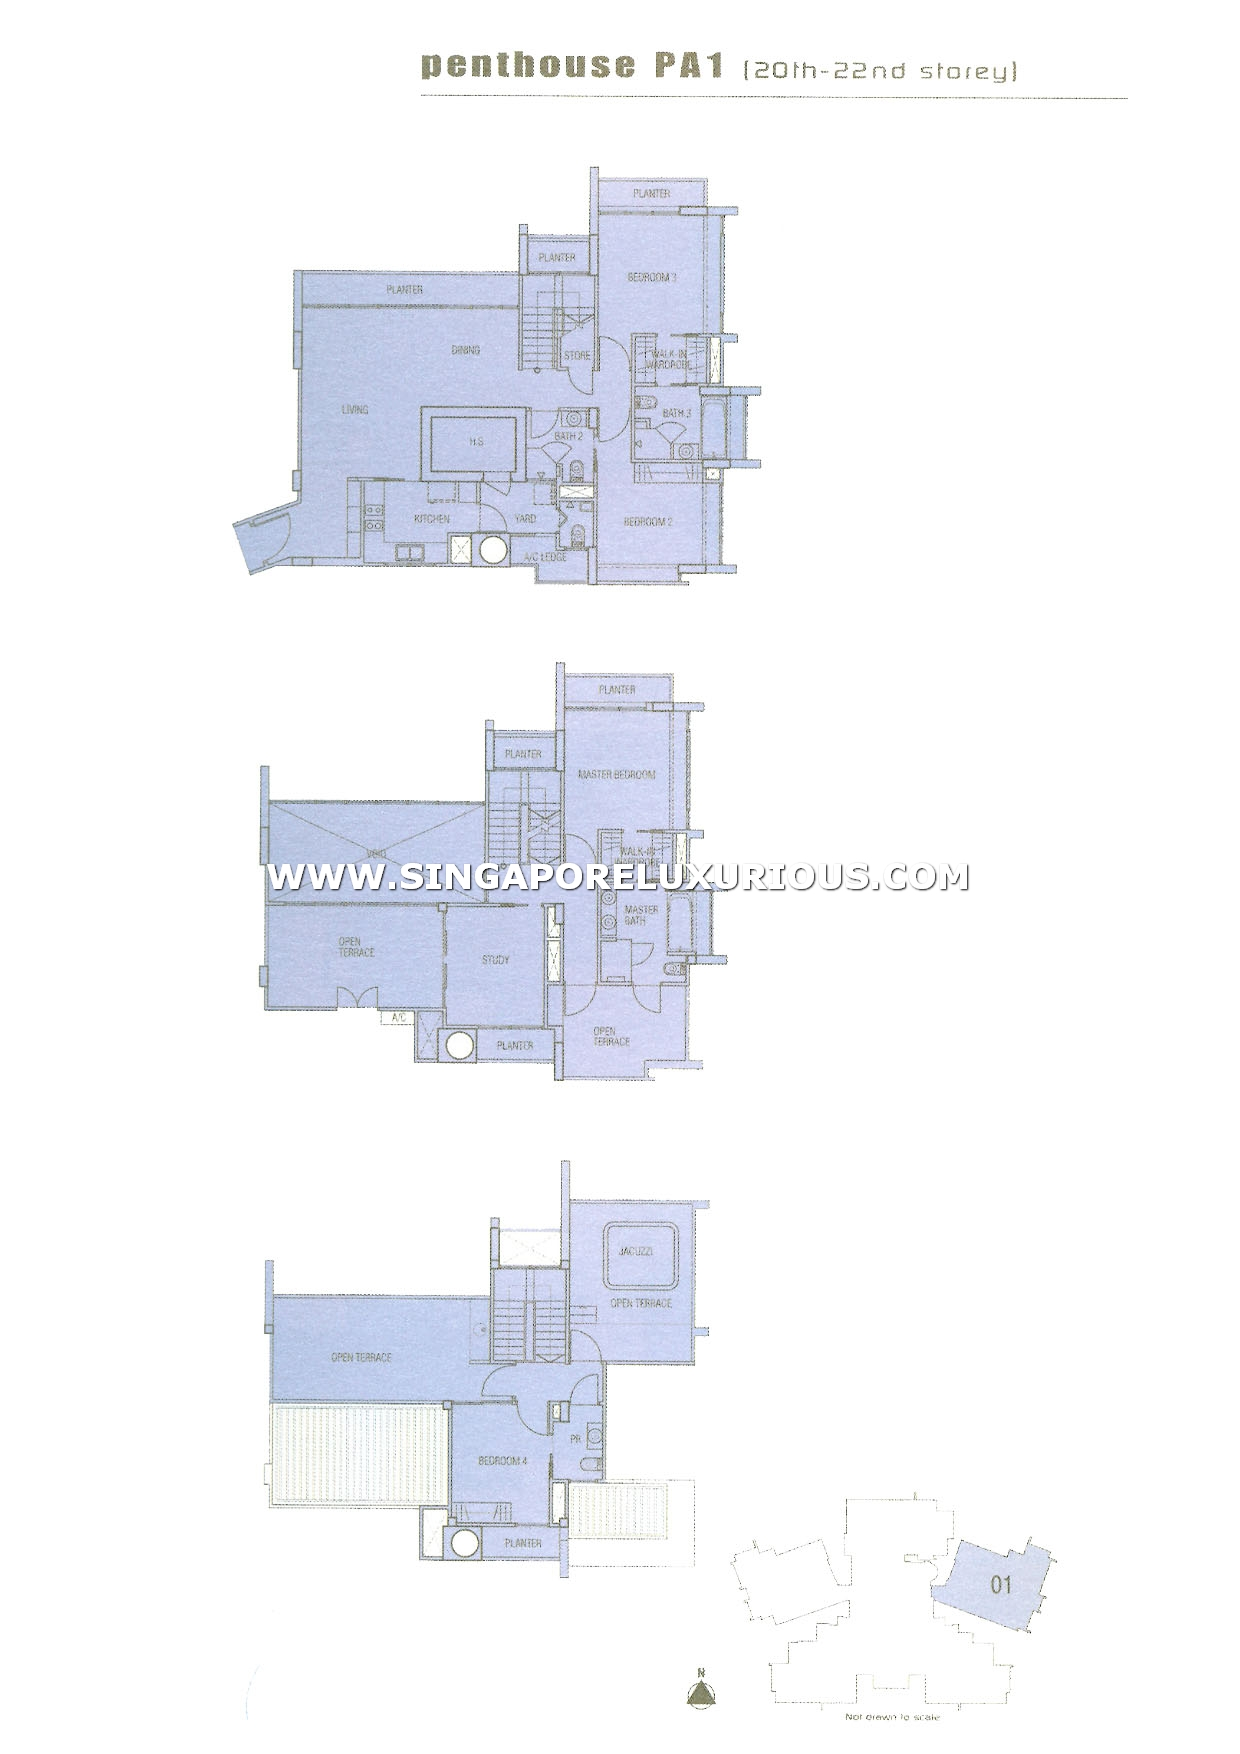 The Paterson Site Amp Floor Plan Singapore Luxurious Property